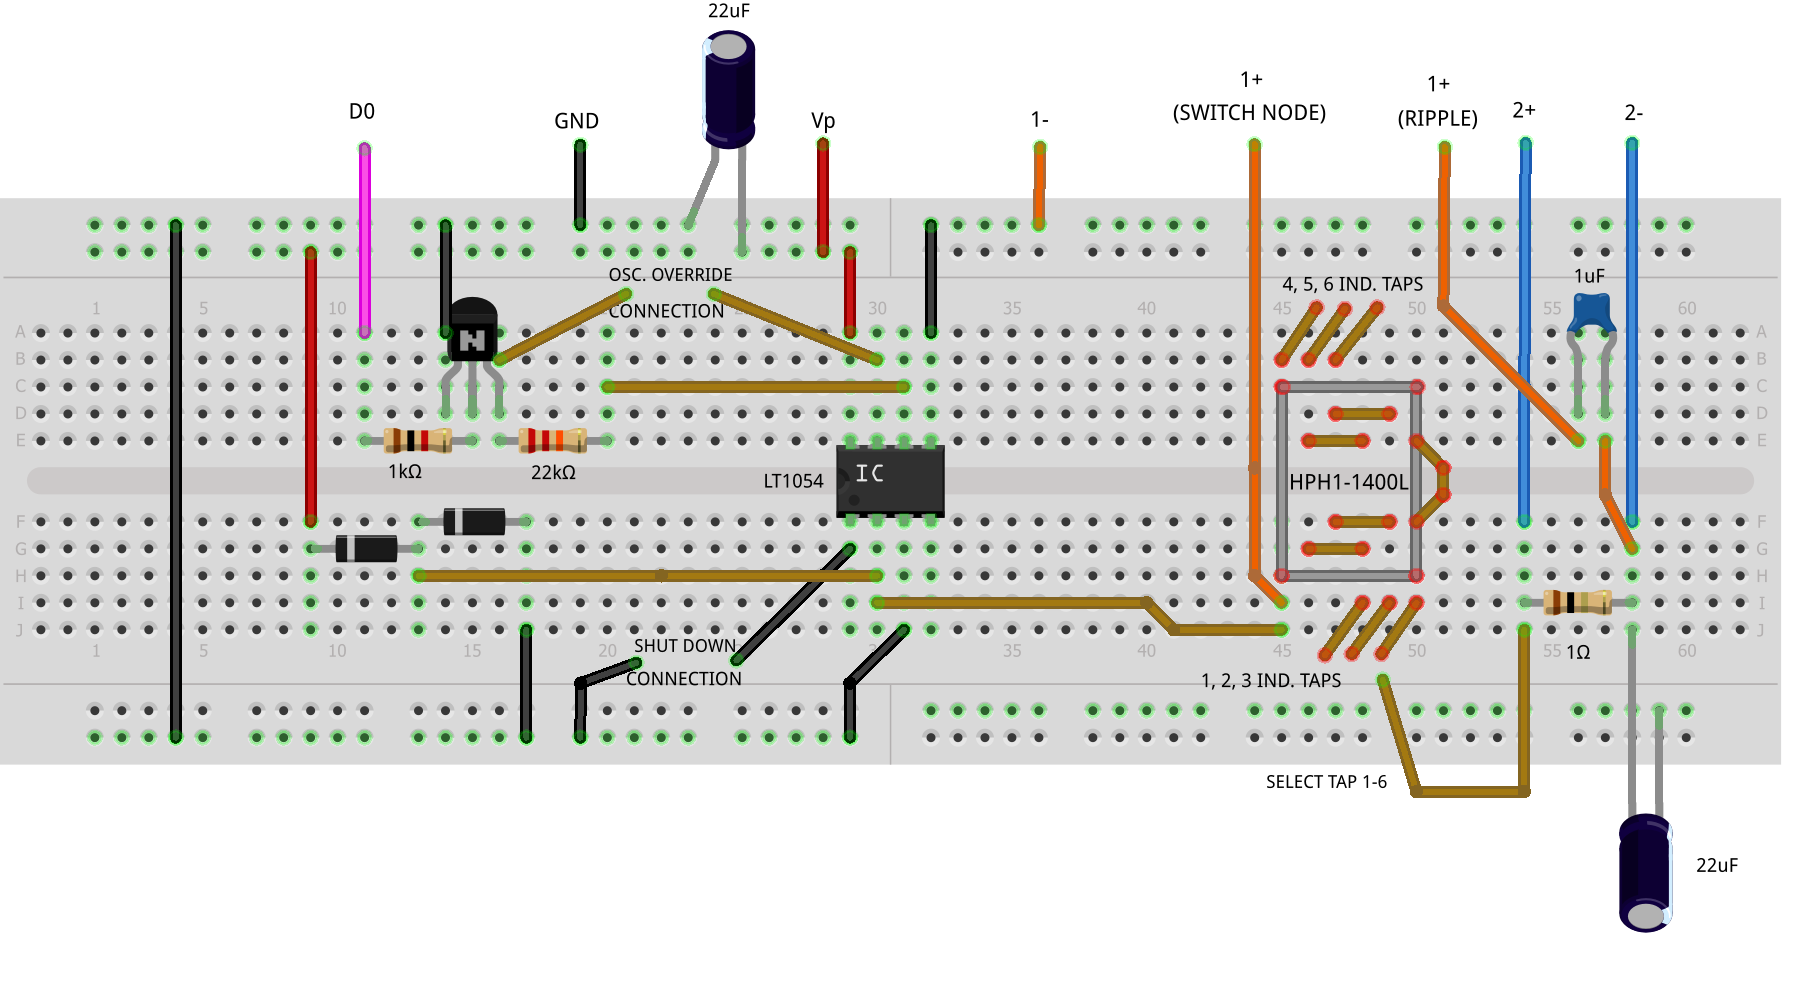 Activity Buck Converter Basics Analog Devices Wiki Circuit Construction Kit Simulation Allows Students To Build Circuits And Testing